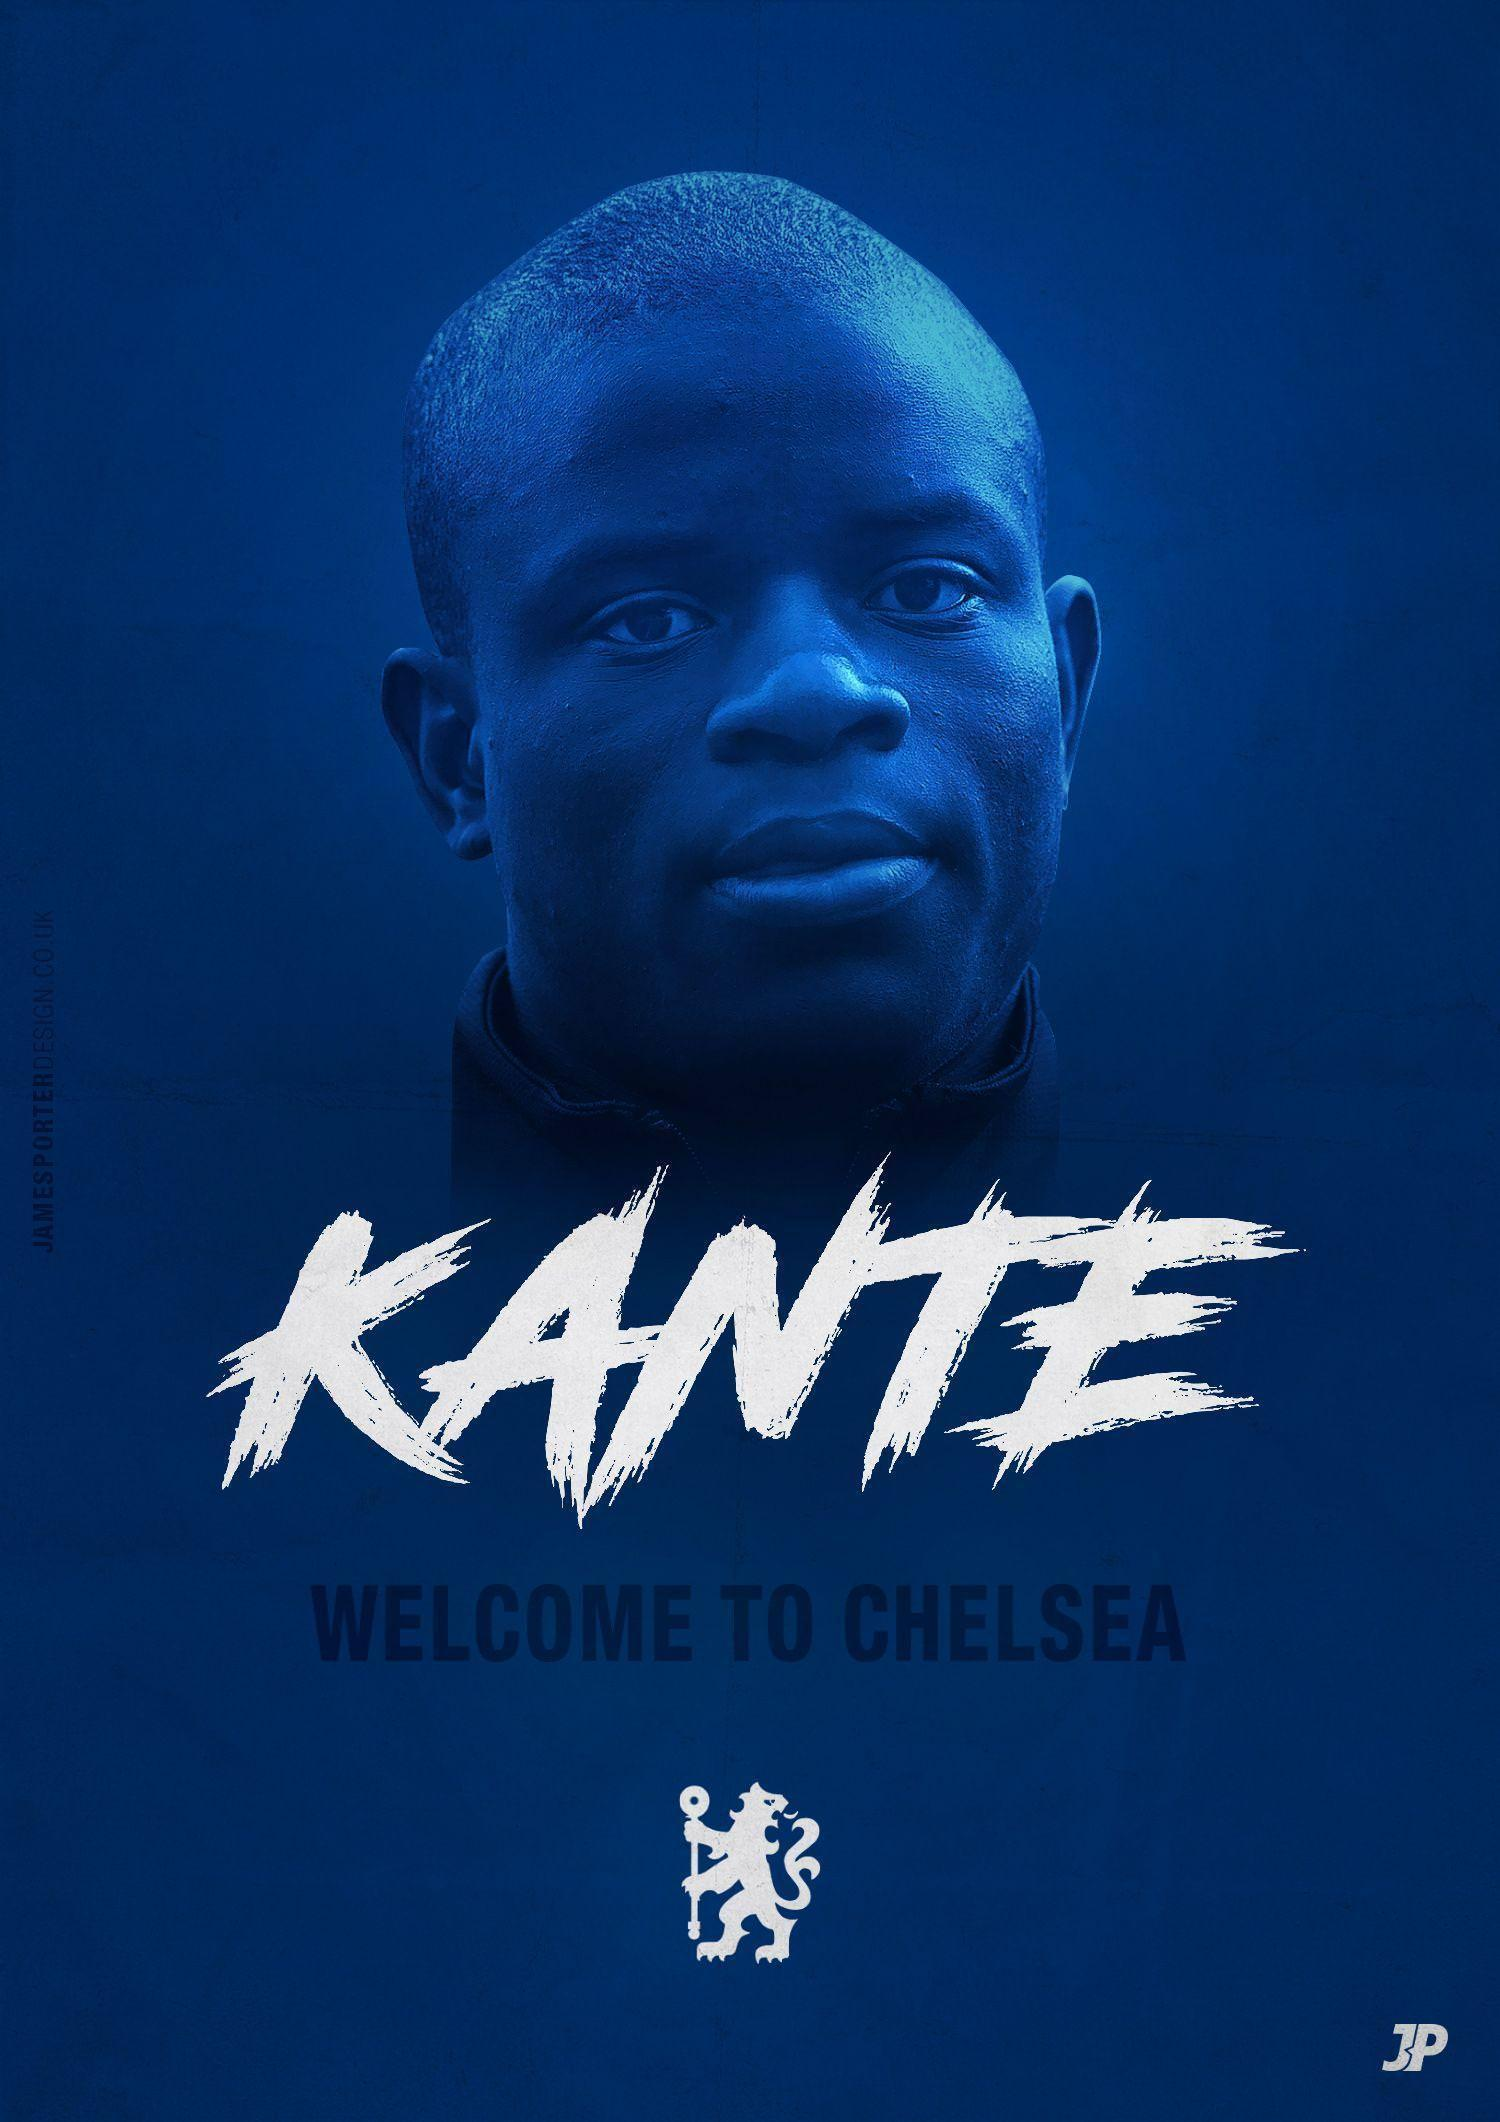 Ngolo Kante Wallpaper Hd For Android Apk Download